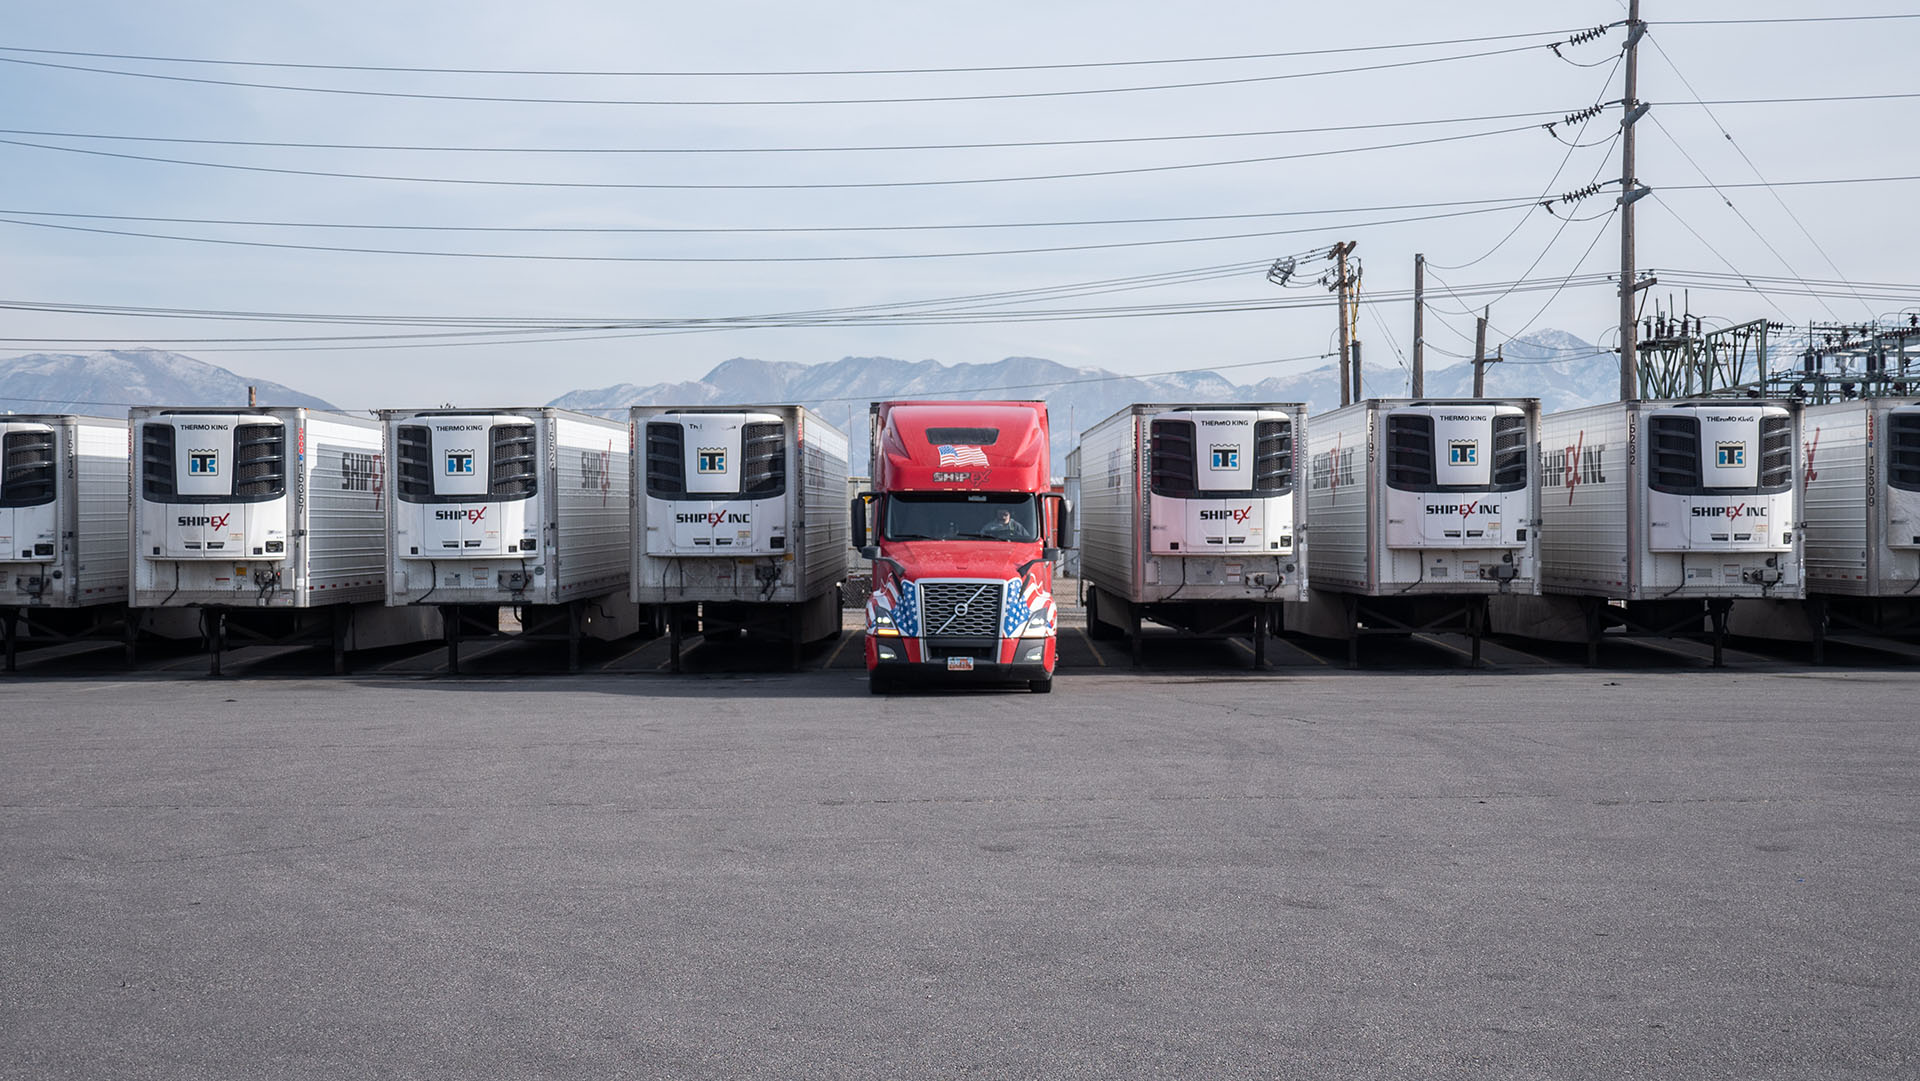 6 Ways Truckers Can Deal with Loneliness on the Road